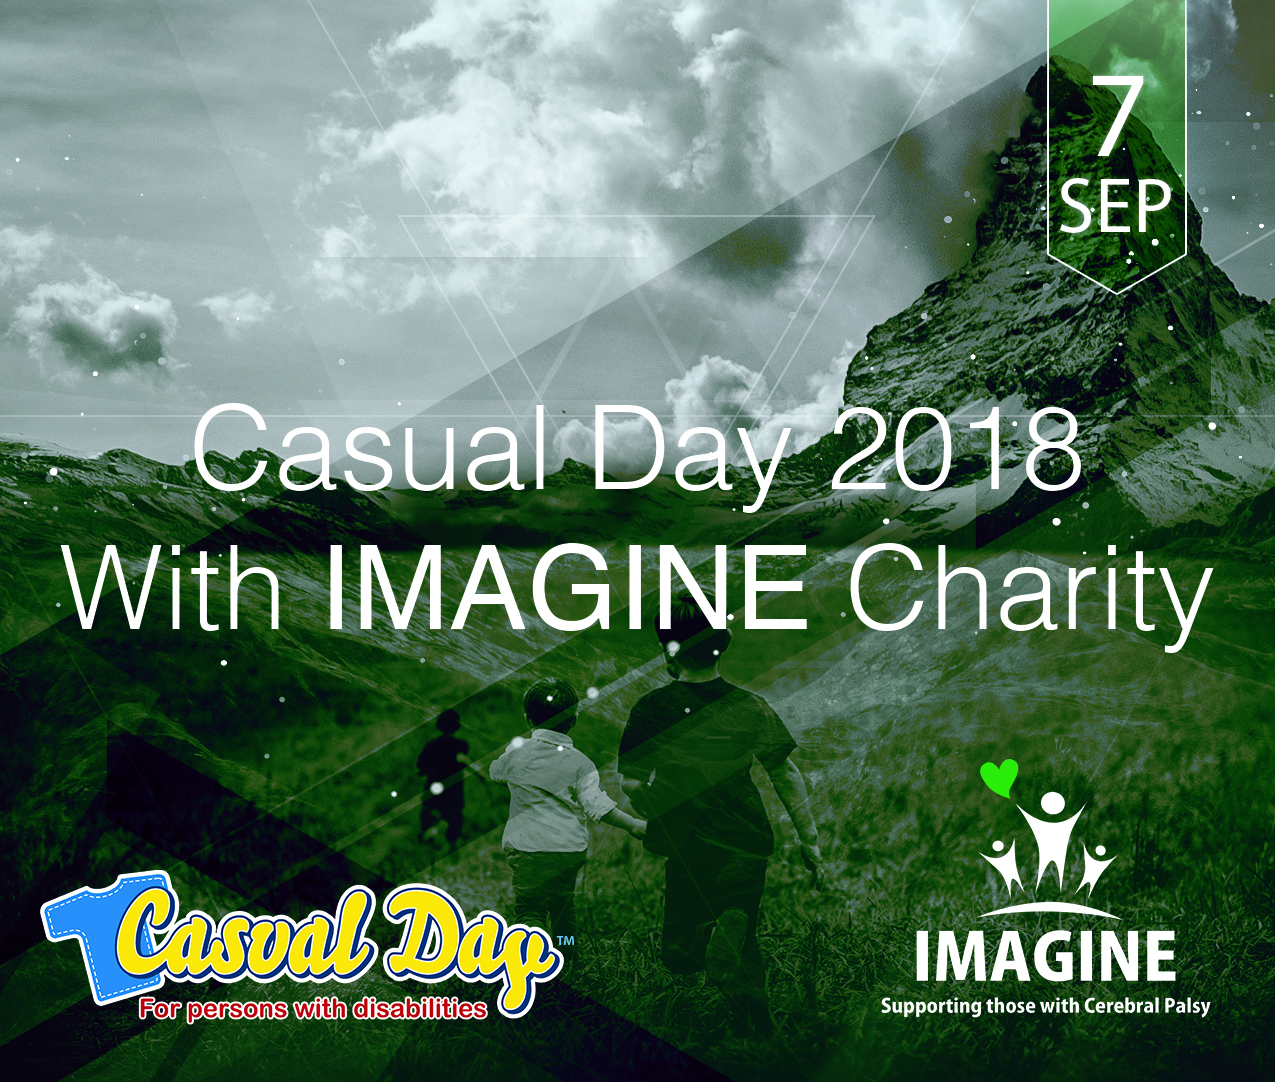 Casual day is south africas leading fundraising awareness campaign for persons with disabilities and is the flagship project of the national council of